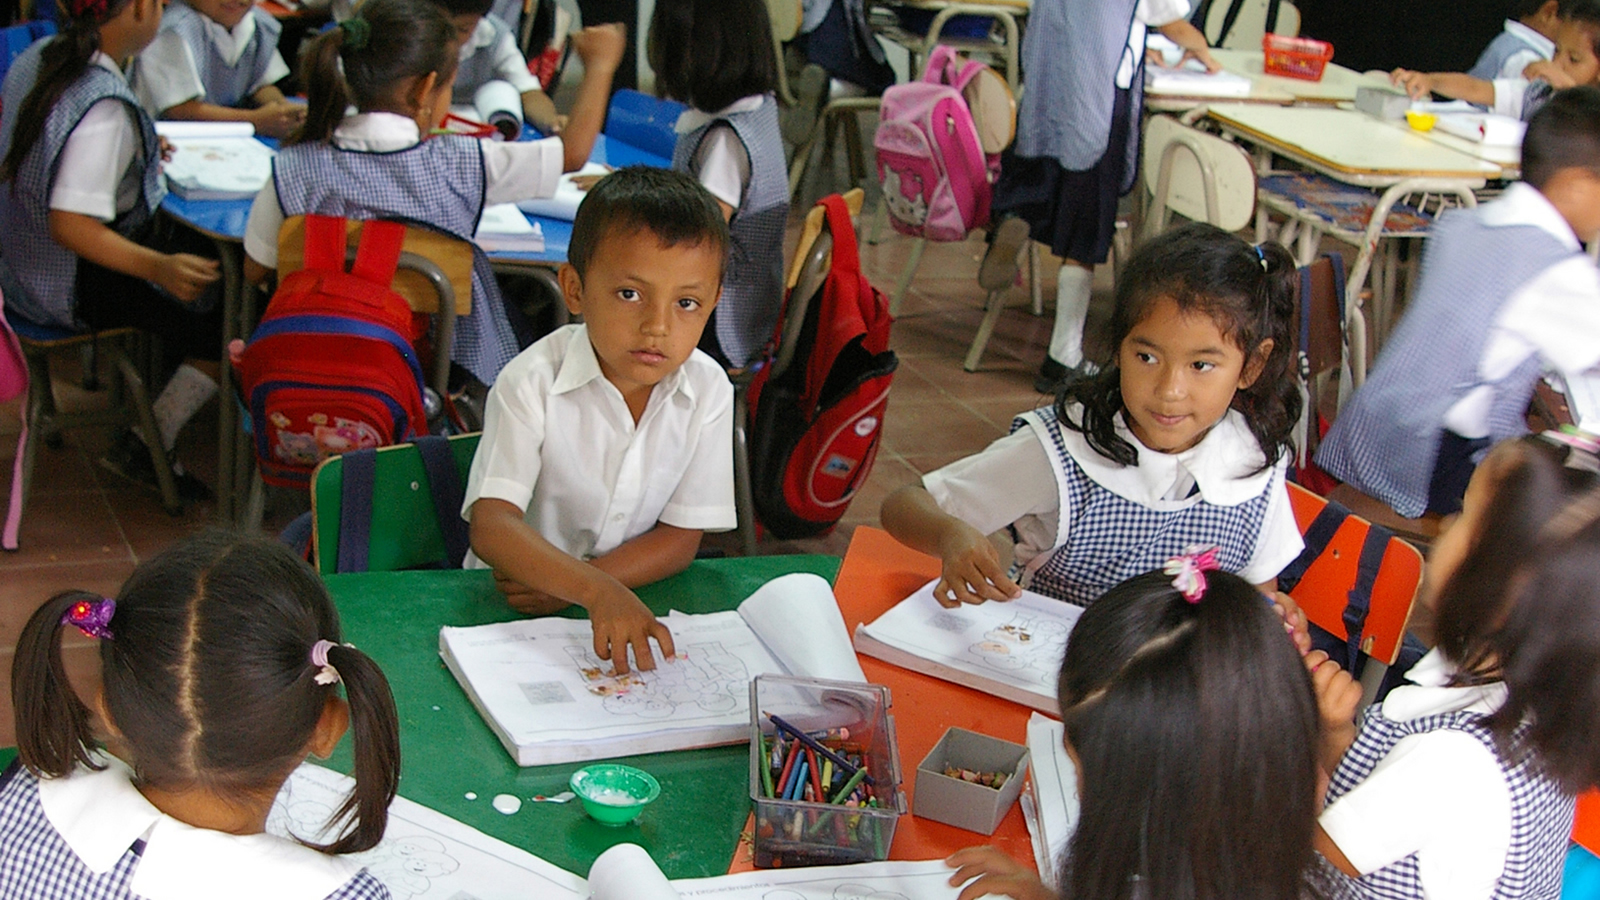 Elementary School Children in El Salvador